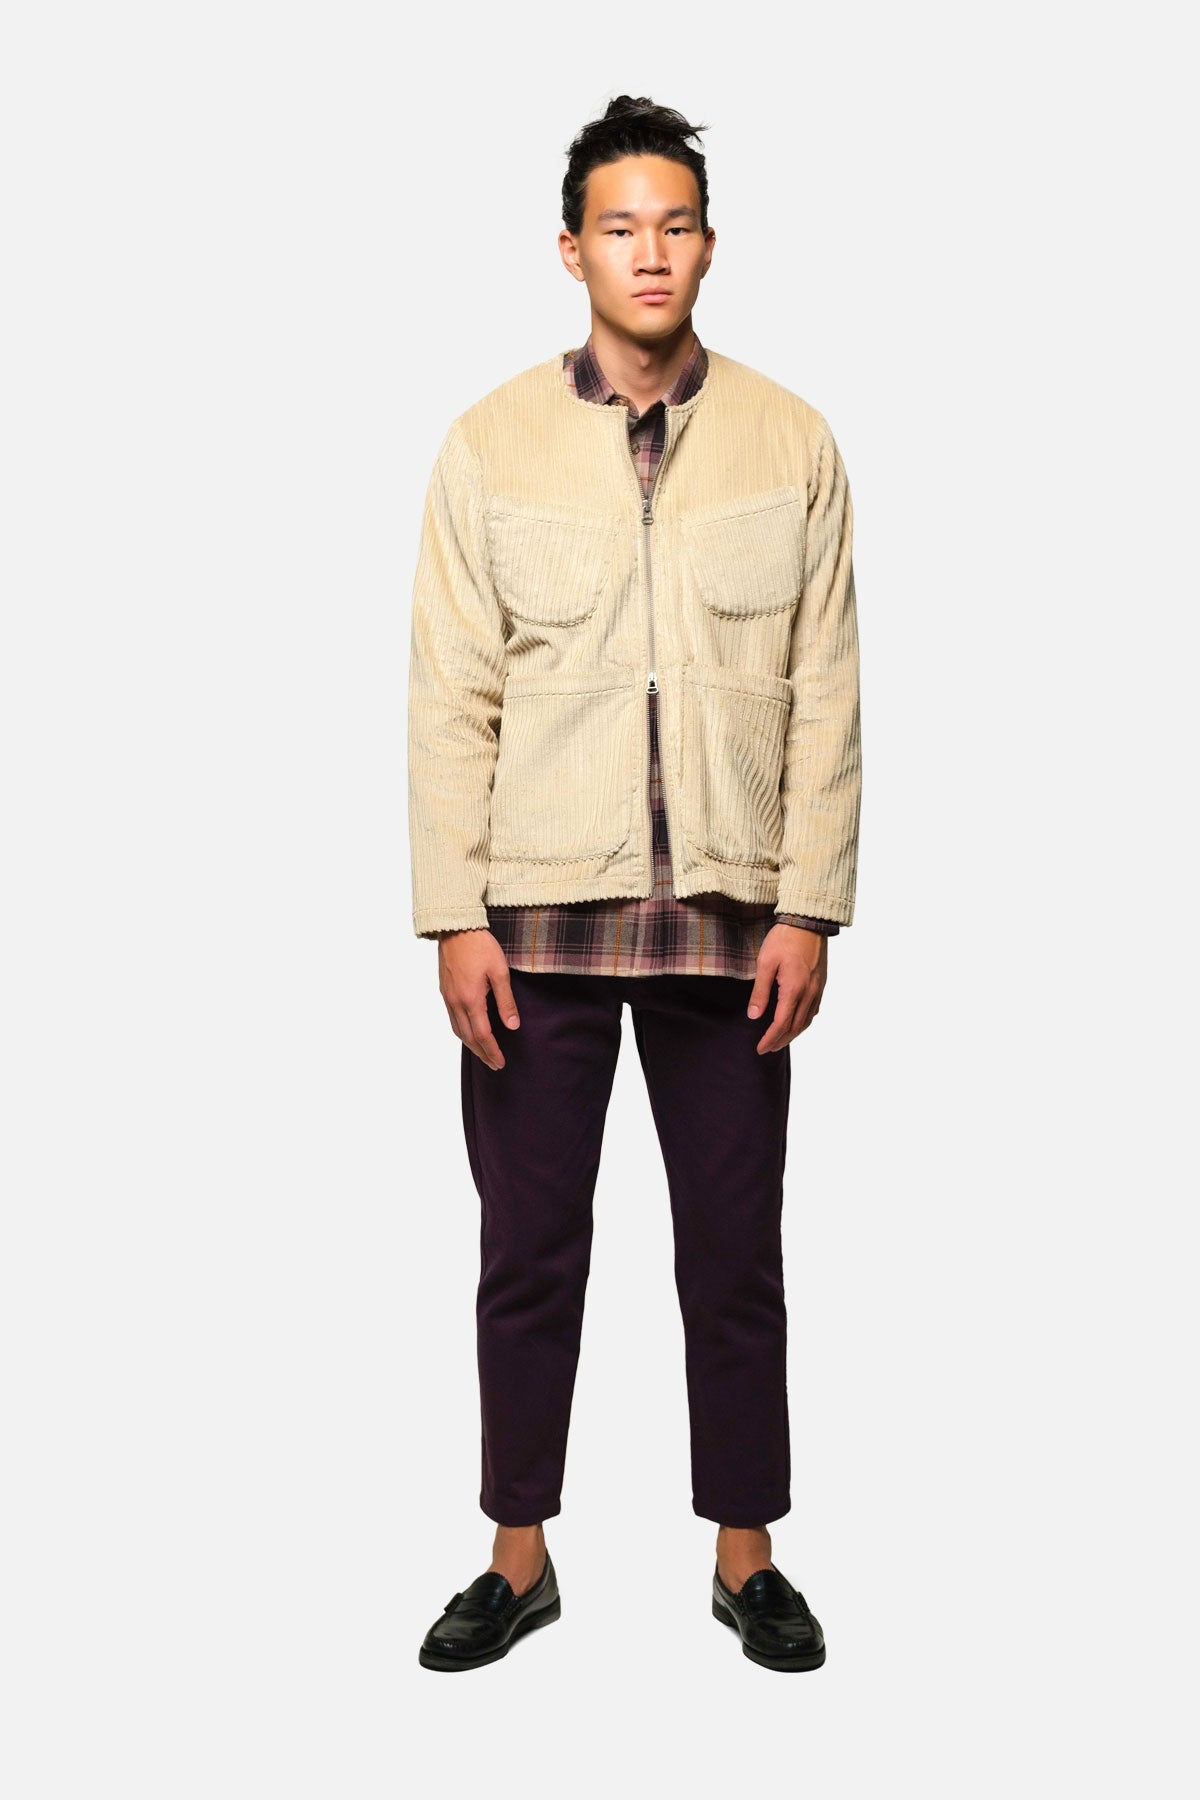 LINCOLN JACKET IN STONE Hi-Lo CORDUROY - Fortune Goods